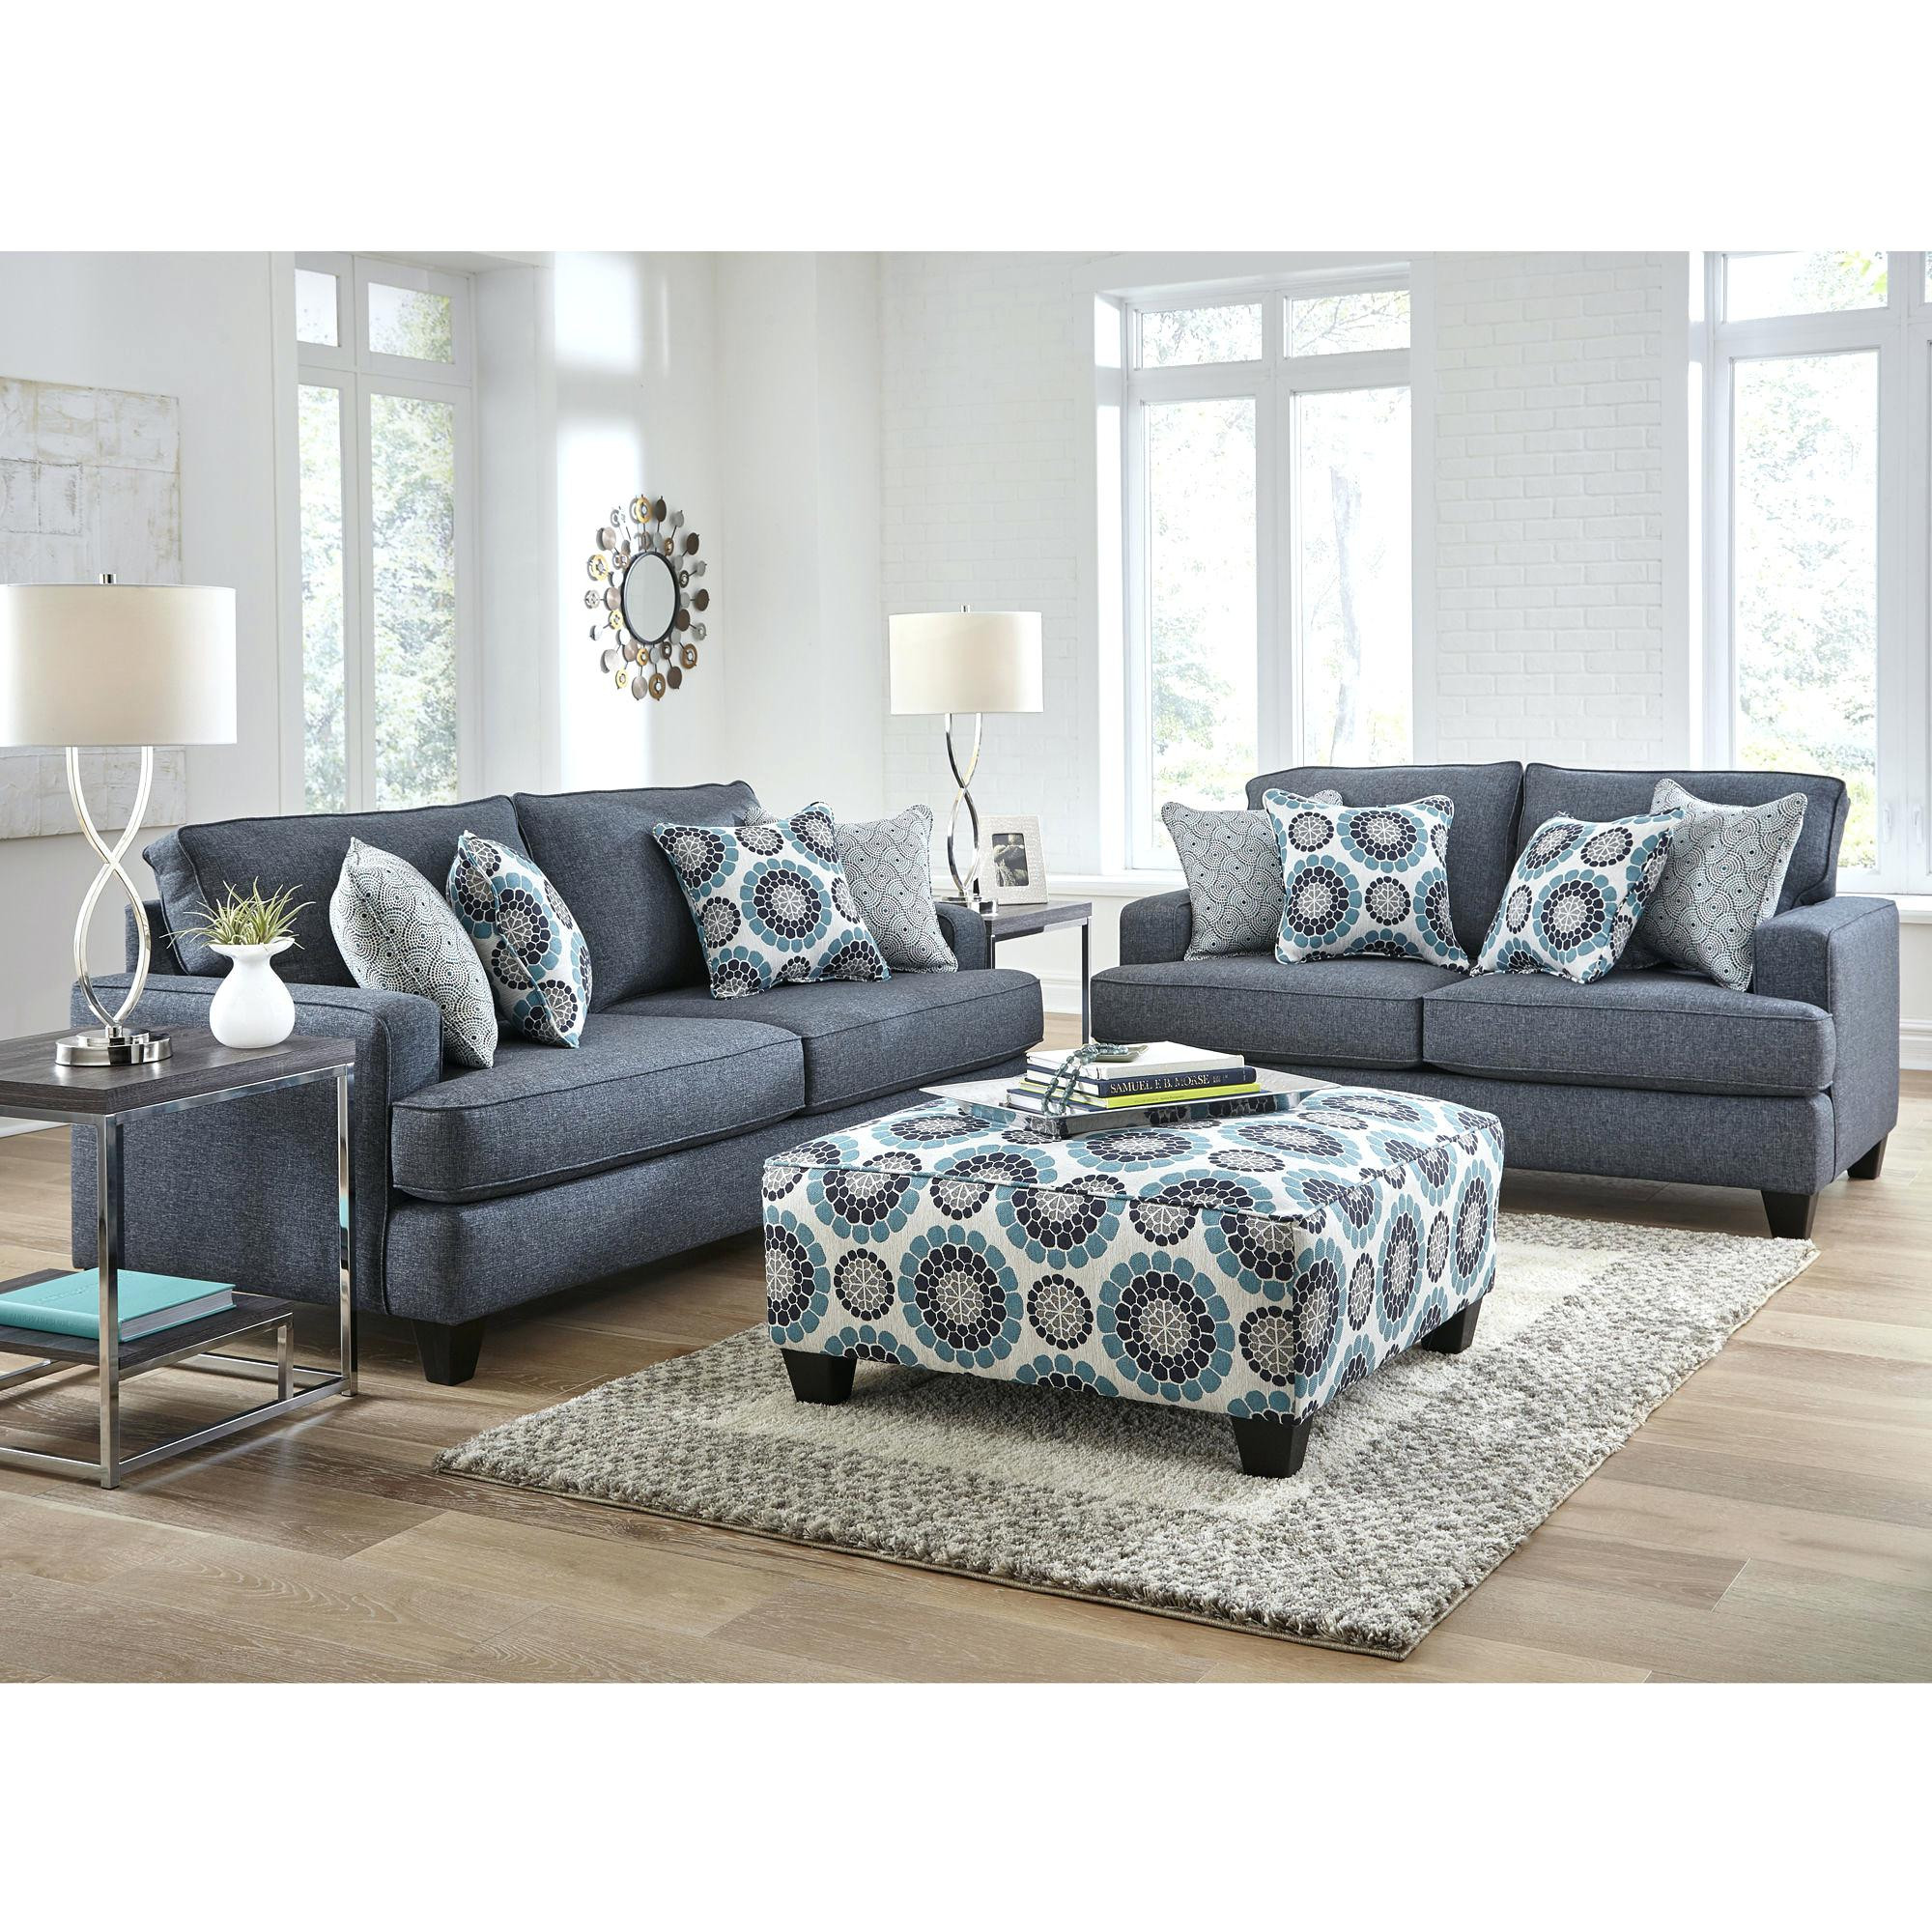 Best ideas about Cheap Living Room Furniture . Save or Pin Furniture Charming And Elegant Cheap Living Room Sets Now.